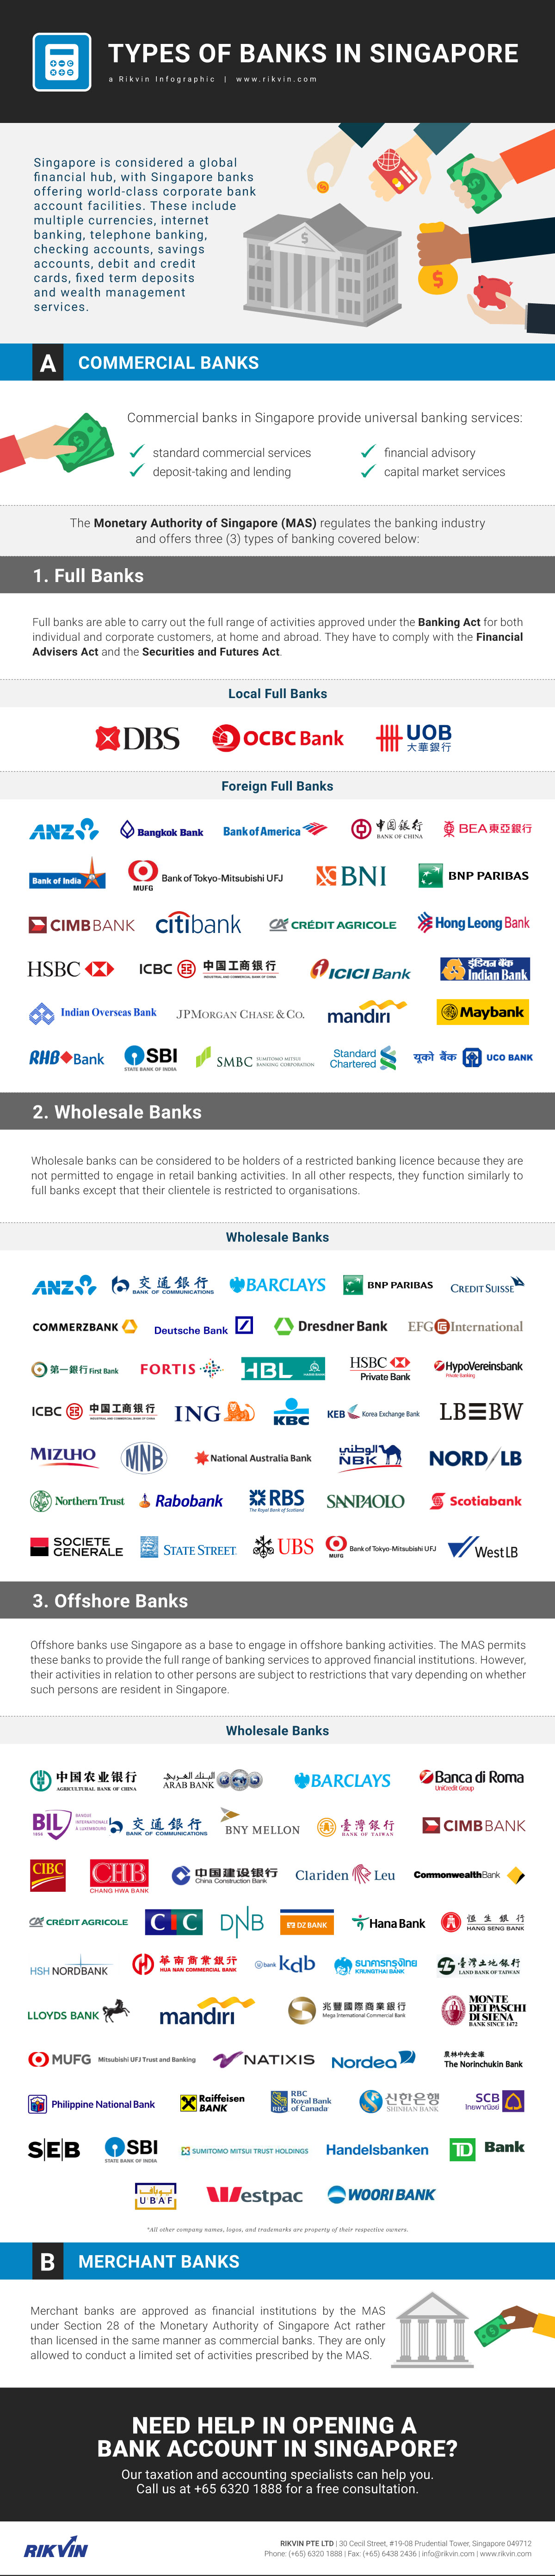 Types of Banks in Singapore - Rikvin Infographic